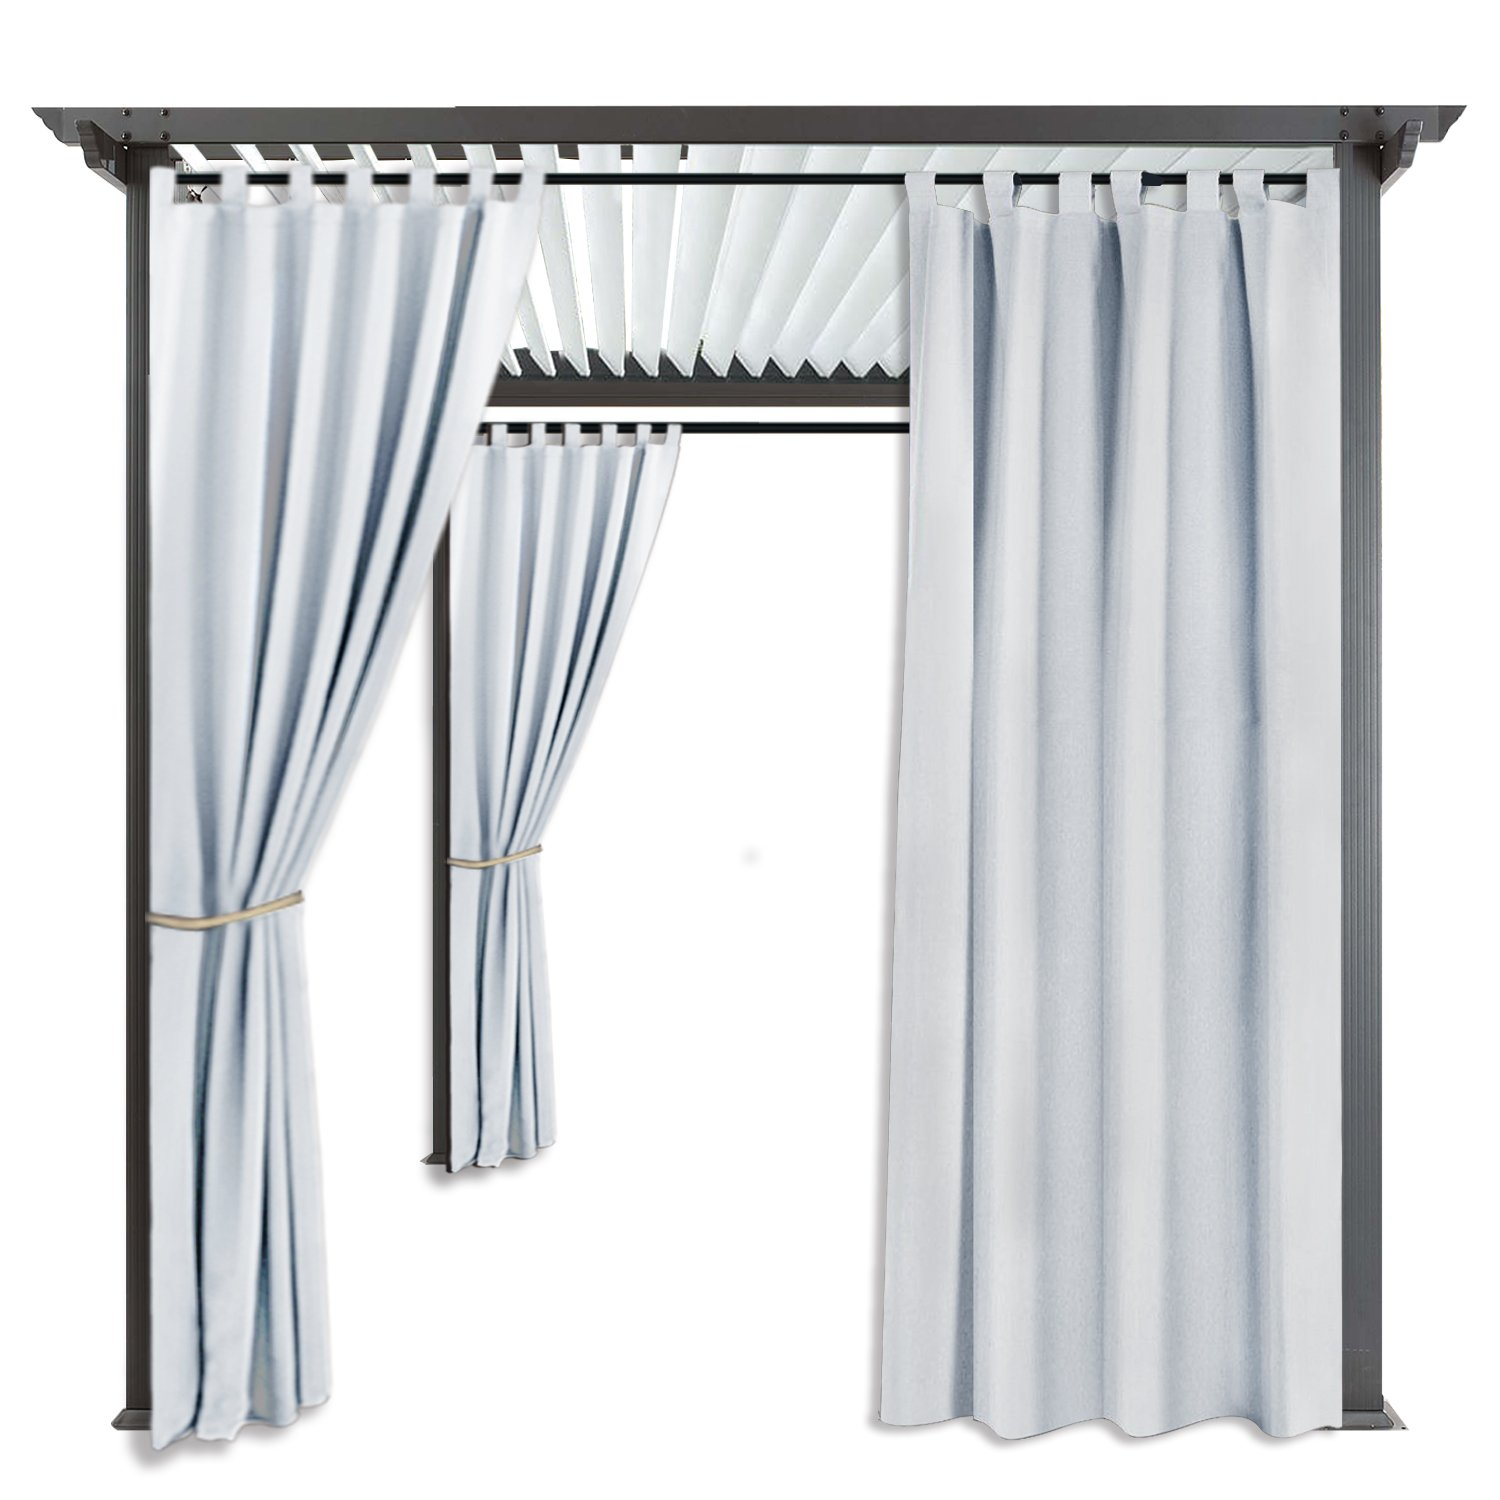 RYB HOME Large Outdoor Curtains - Outdoor Décor Heavy Duty Top Tab Water Repellent Sun Light Block Side Wall Panel for Cabana/Graden, 1 Panel, Width 52'' x Length 108'', Greyish White